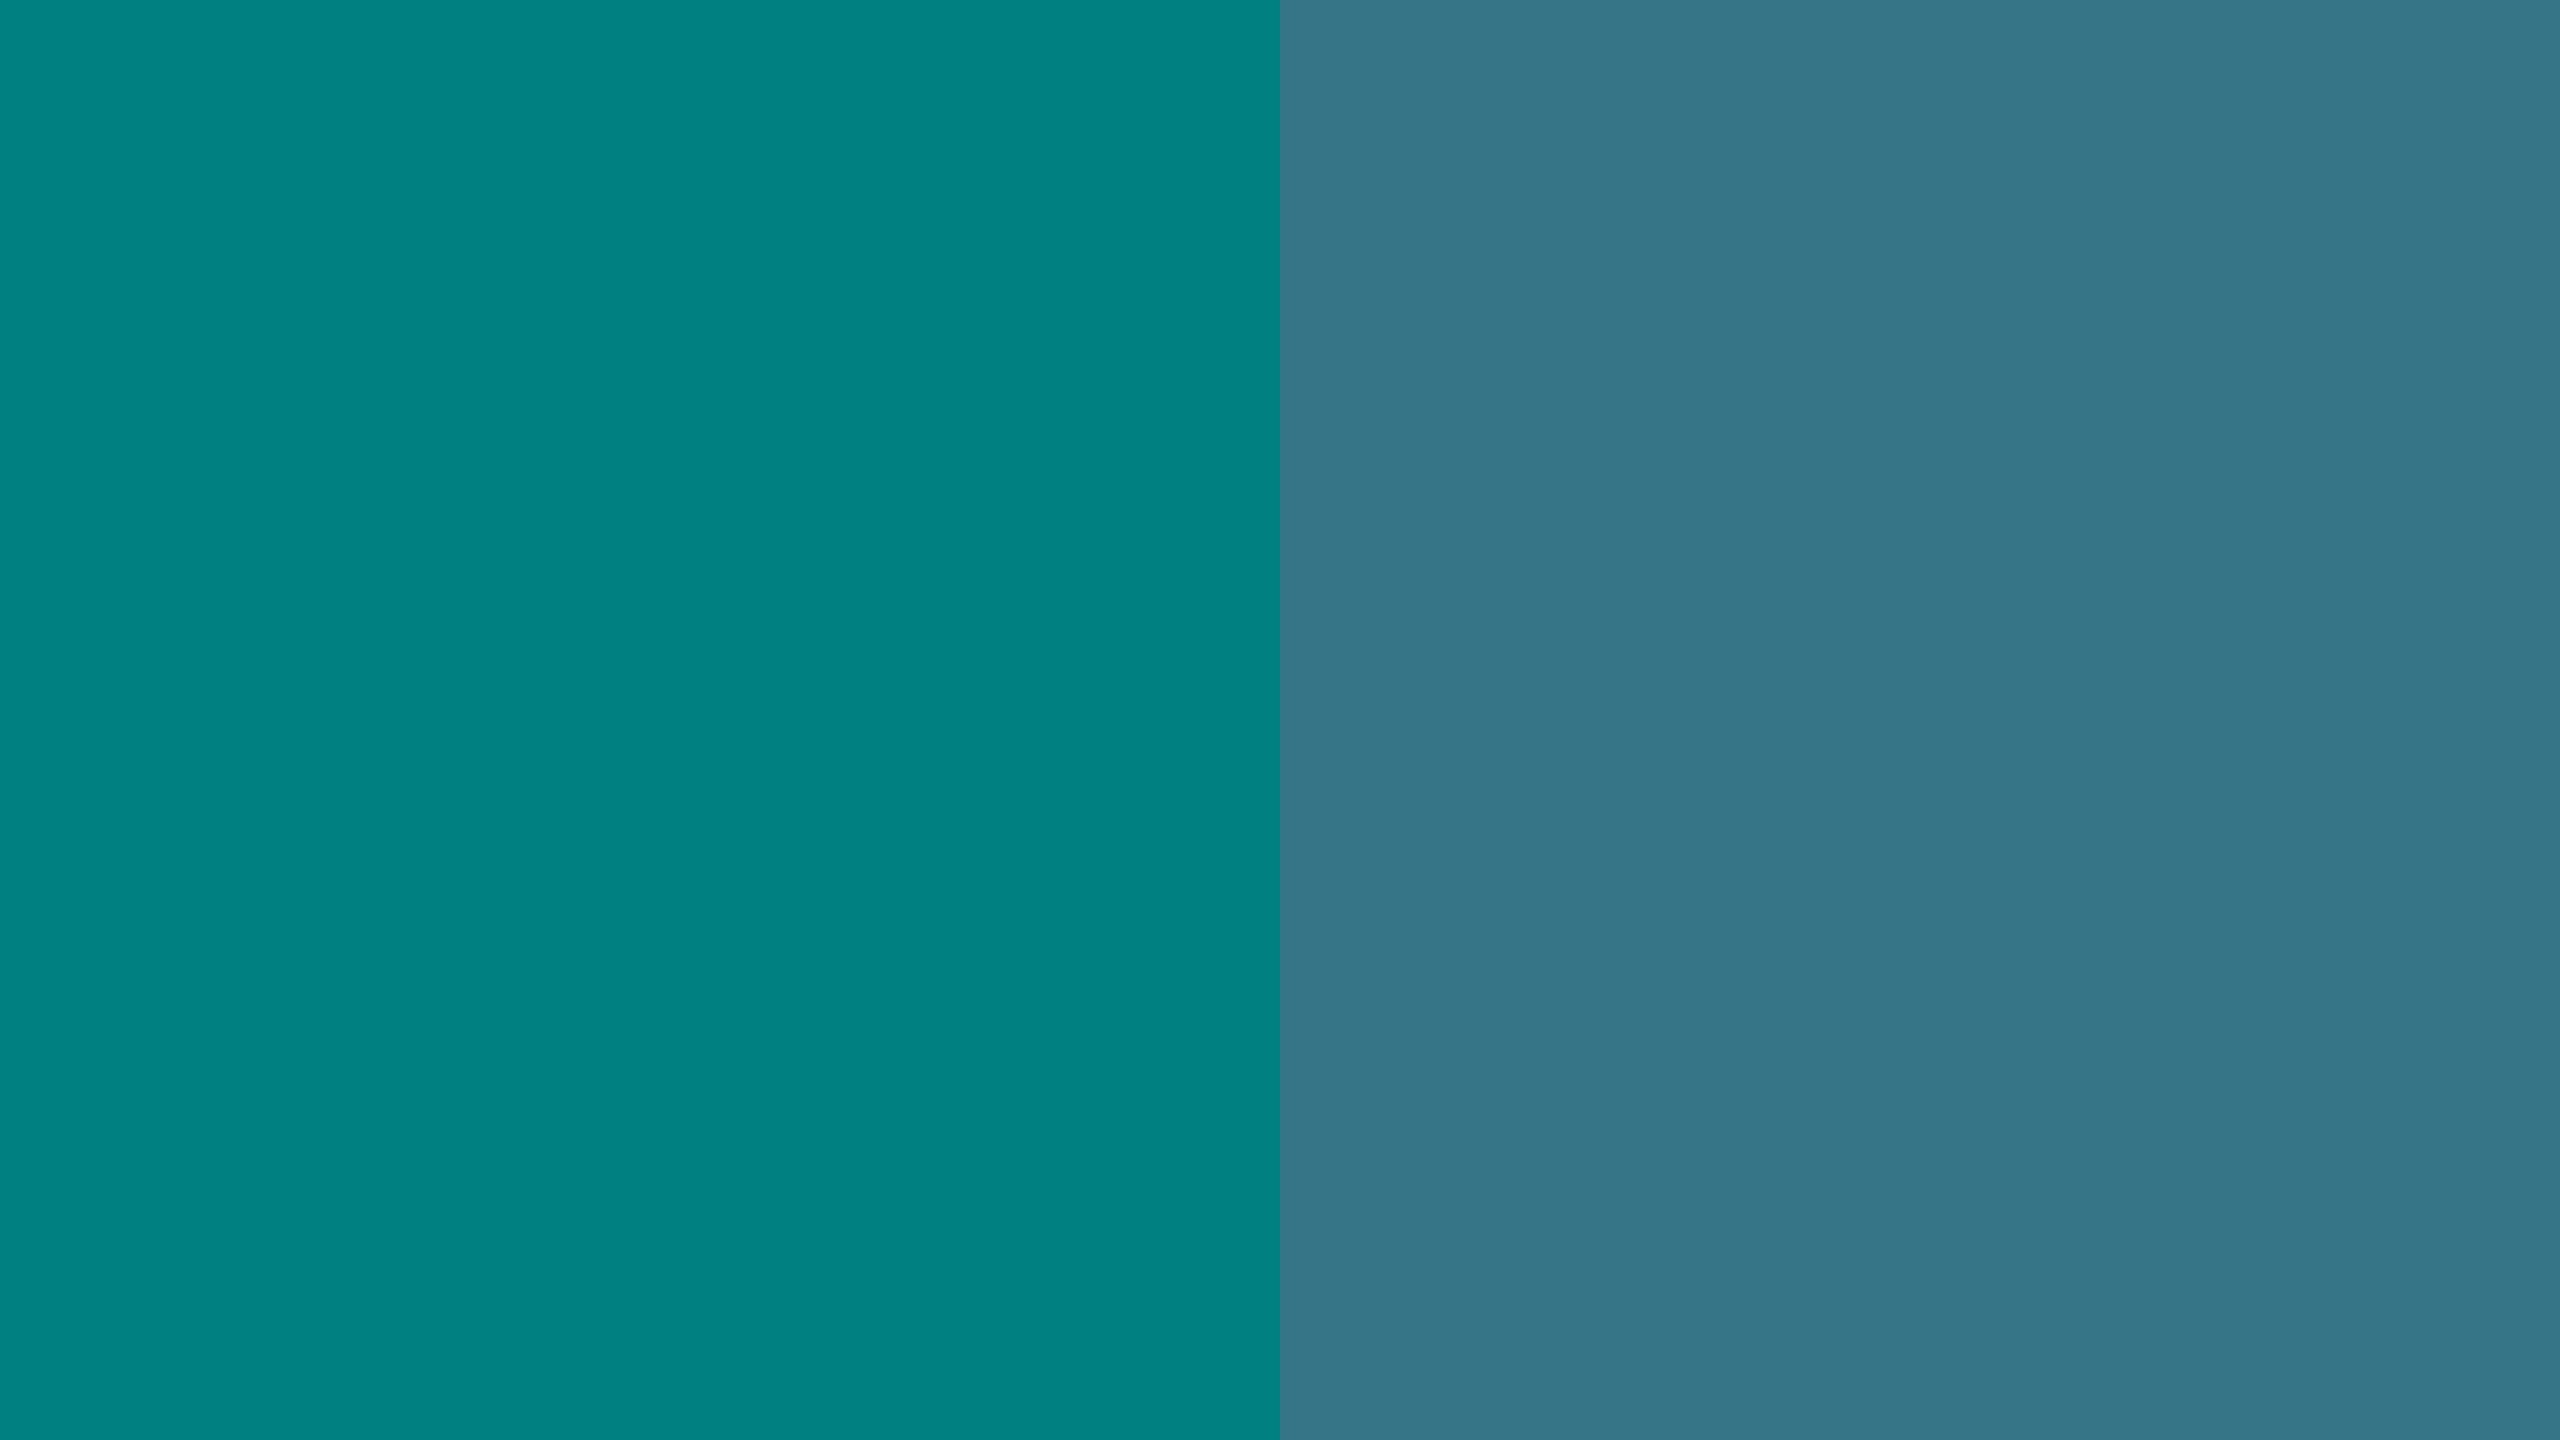 Teal blue wallpaper wallpapersafari What color is teal